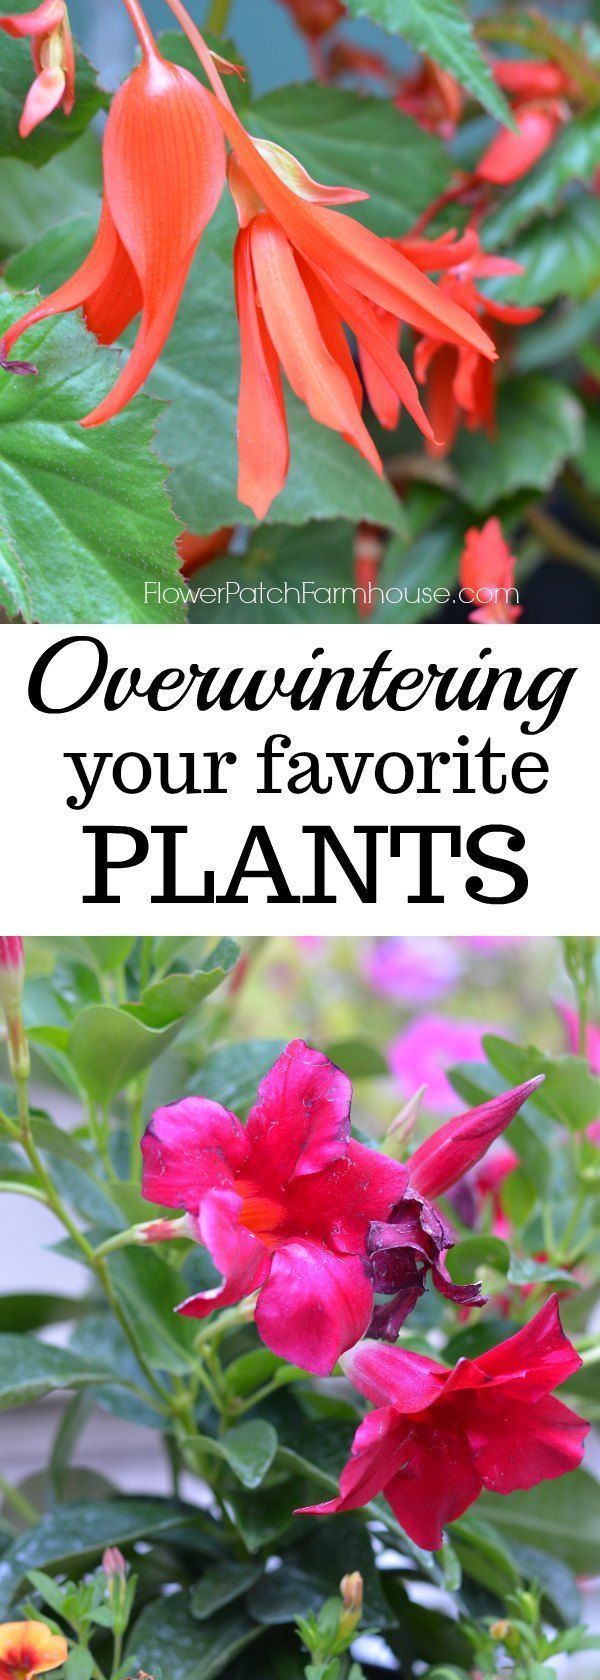 Overwinter some of your favorite #plants, come see how I treat them before bringing them in to keep them healthy and happy through the cold winter months and even get some blooms! #gardening #indoorplants